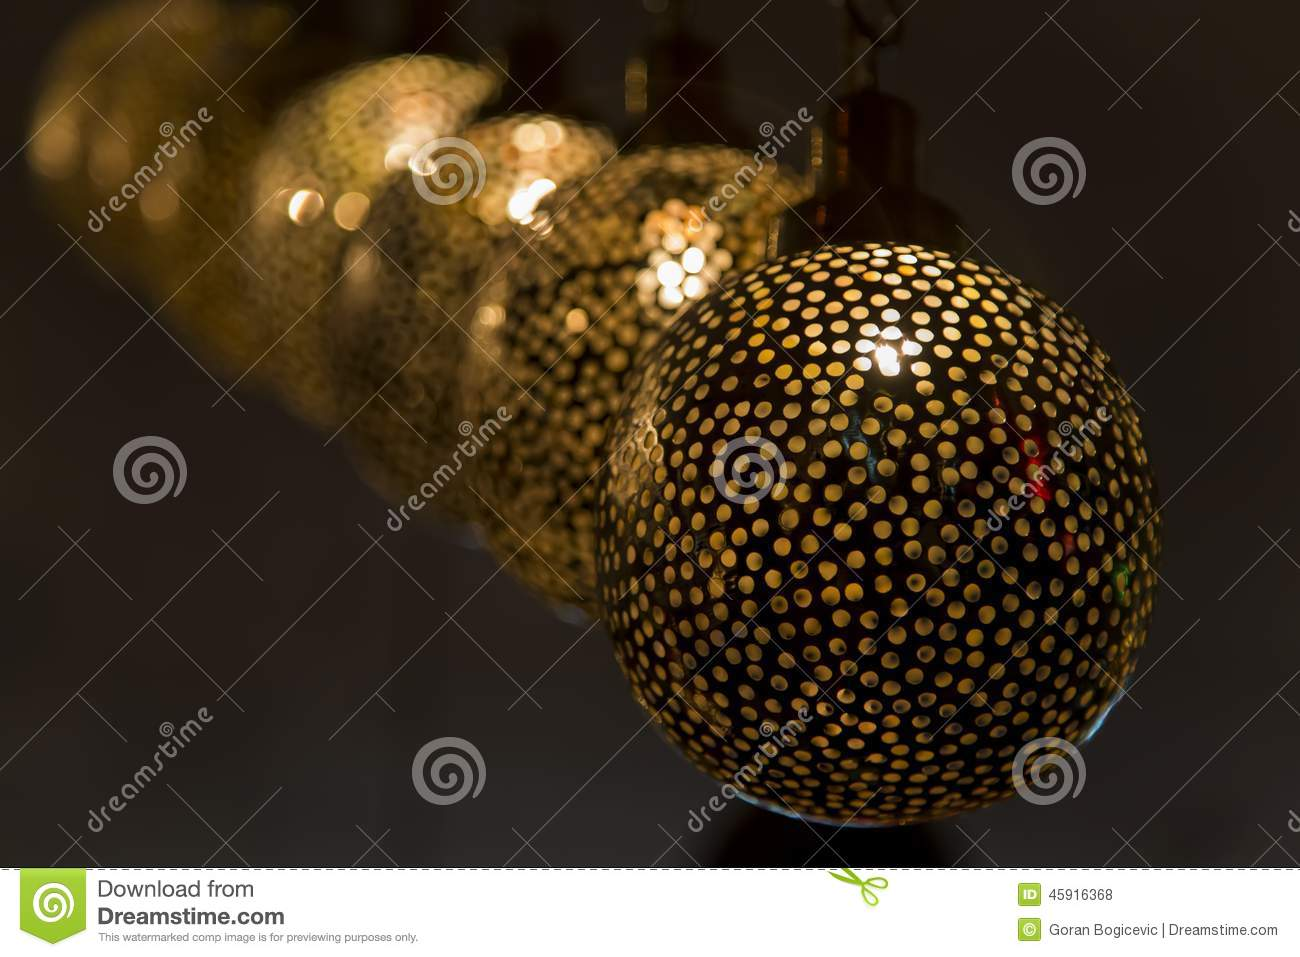 https://thumbs.dreamstime.com/z/oosterse-lampen-45916368.jpg